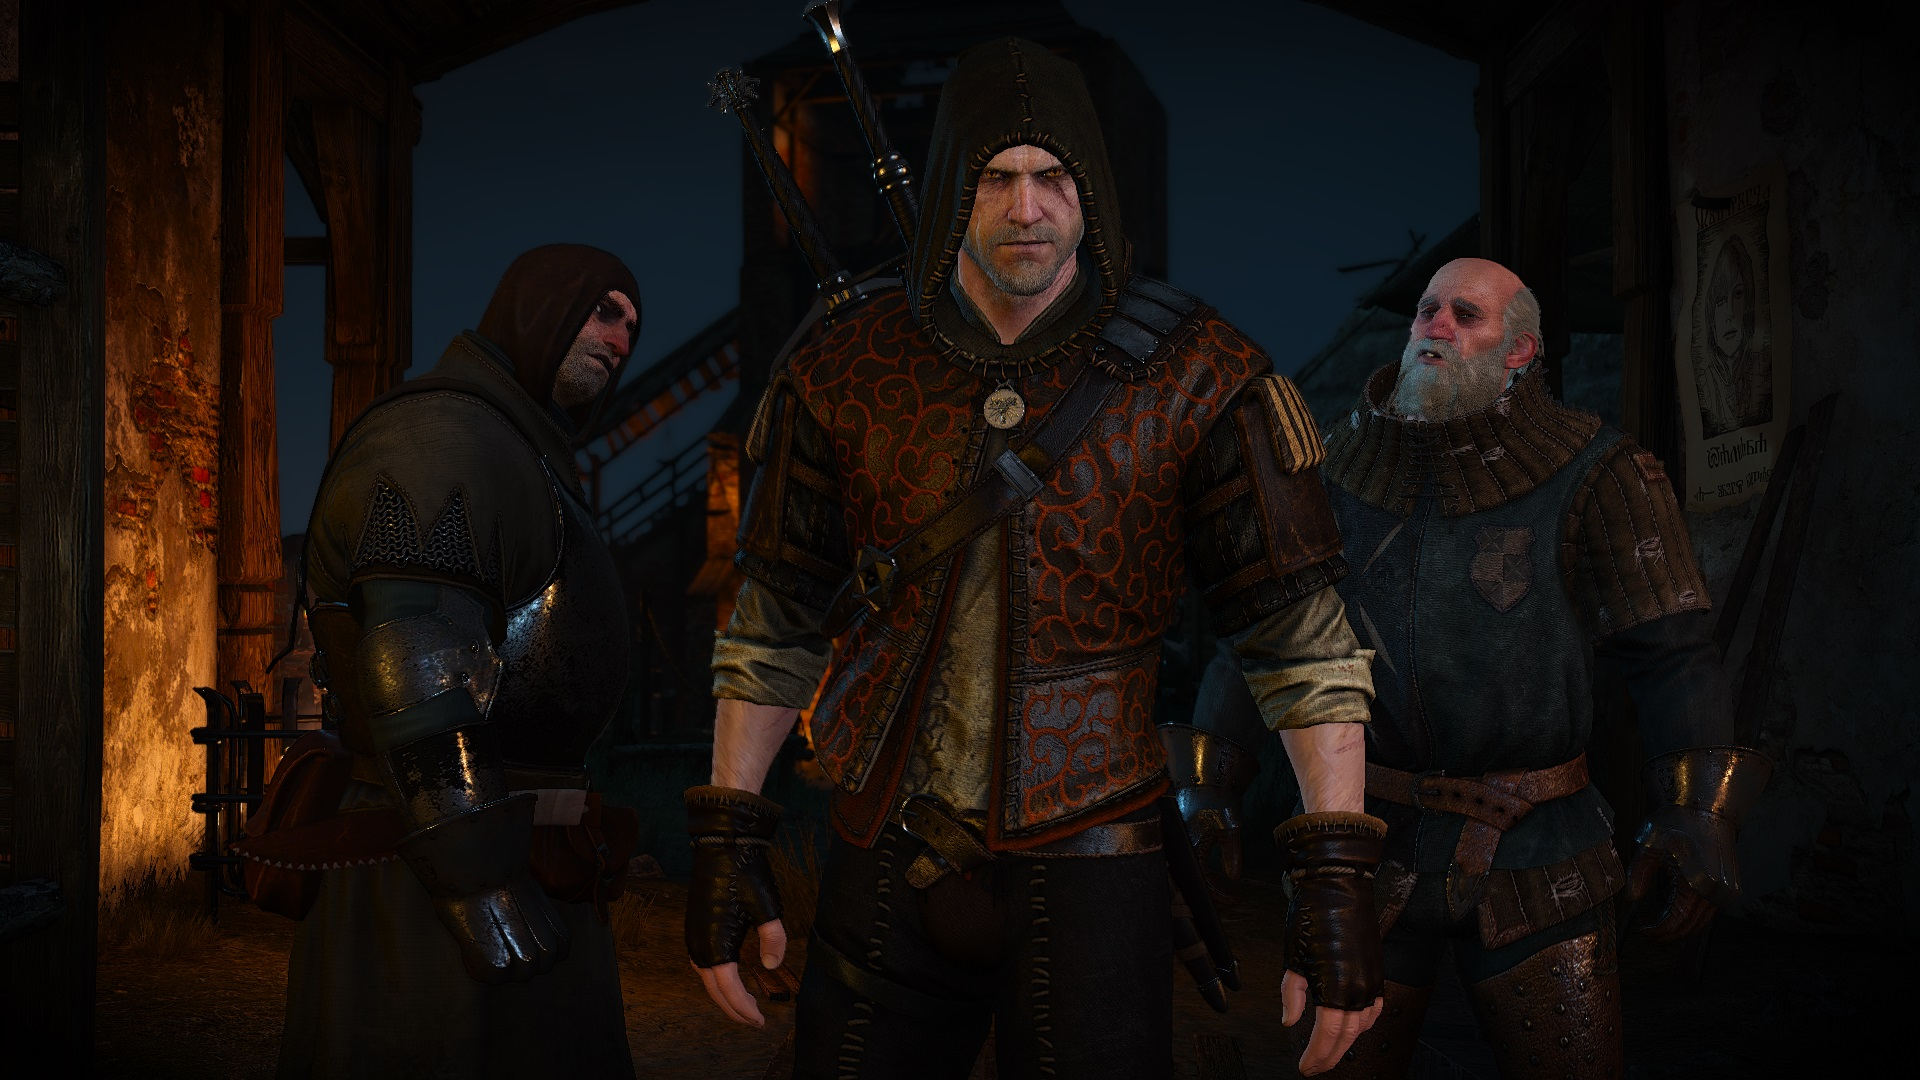 Butcher Of Blaviken At The Witcher 3 Nexus Mods And Community The witcher 3 wild hunt butcher of blaviken and the can't touch this trophy and. nexus mods